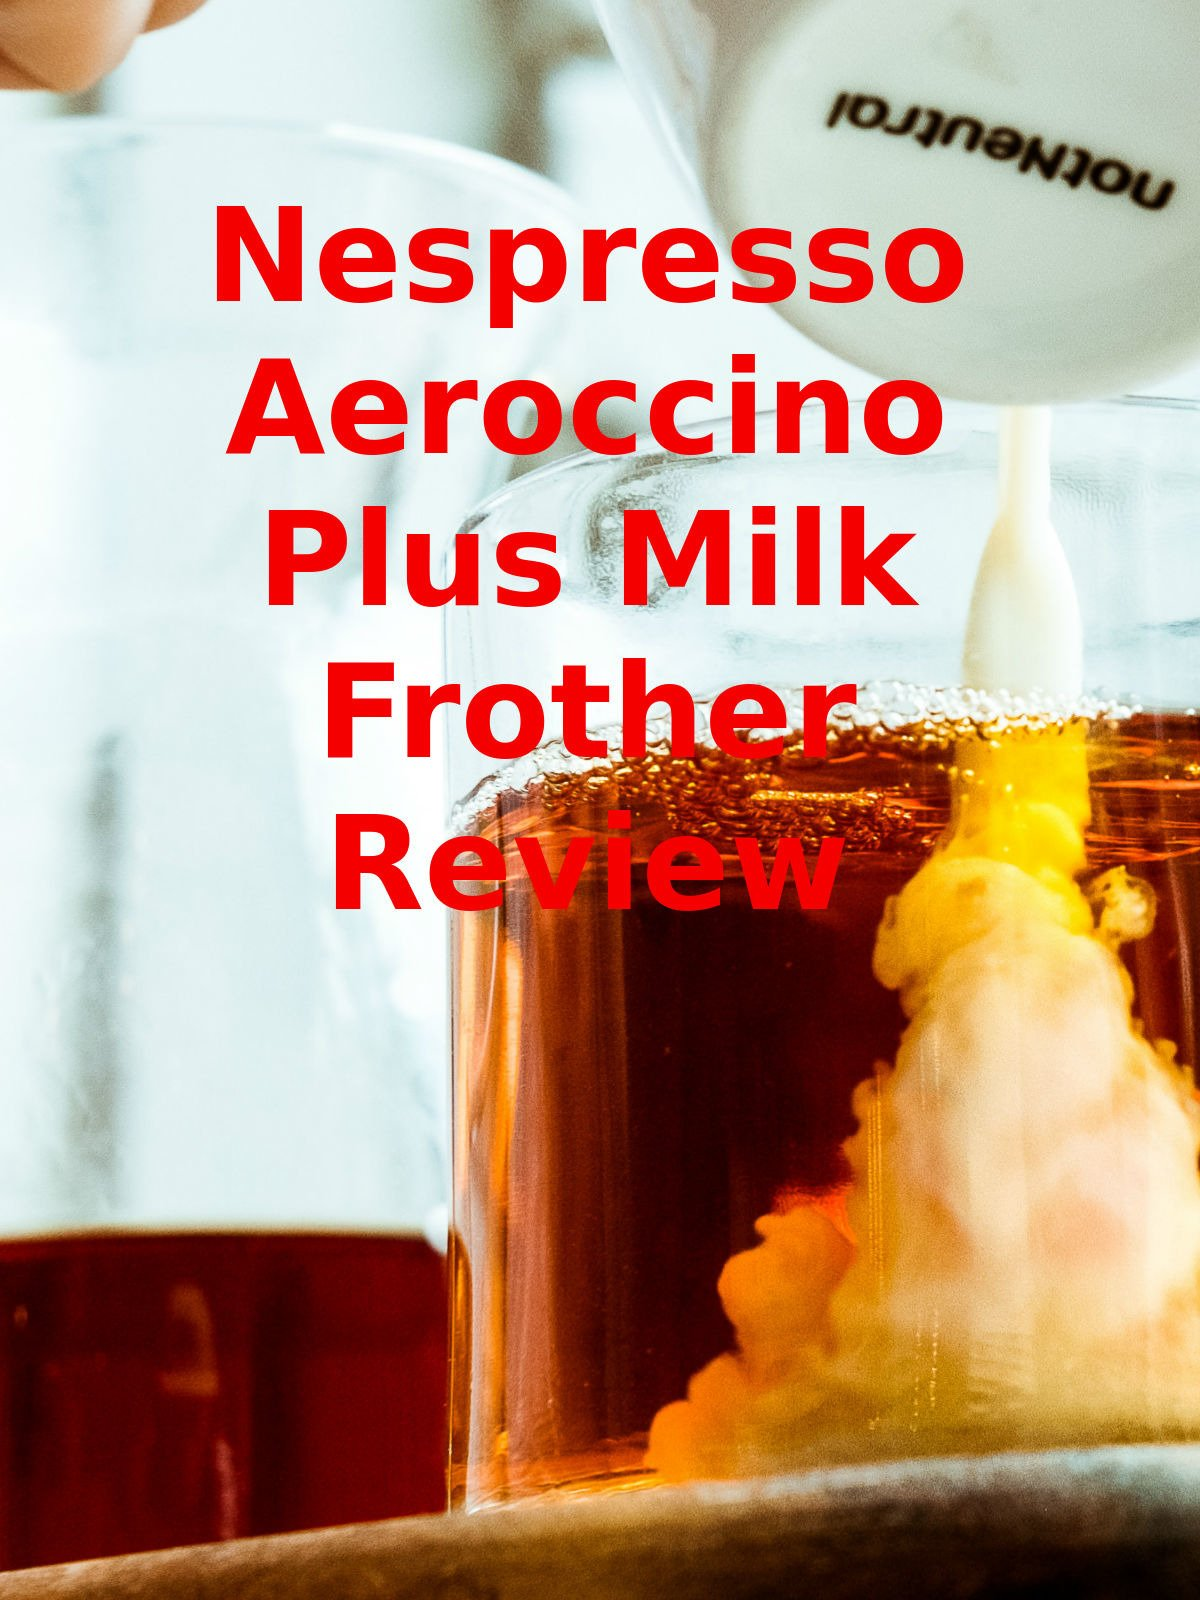 Review: Nespresso Aeroccino Plus Milk Frother Review